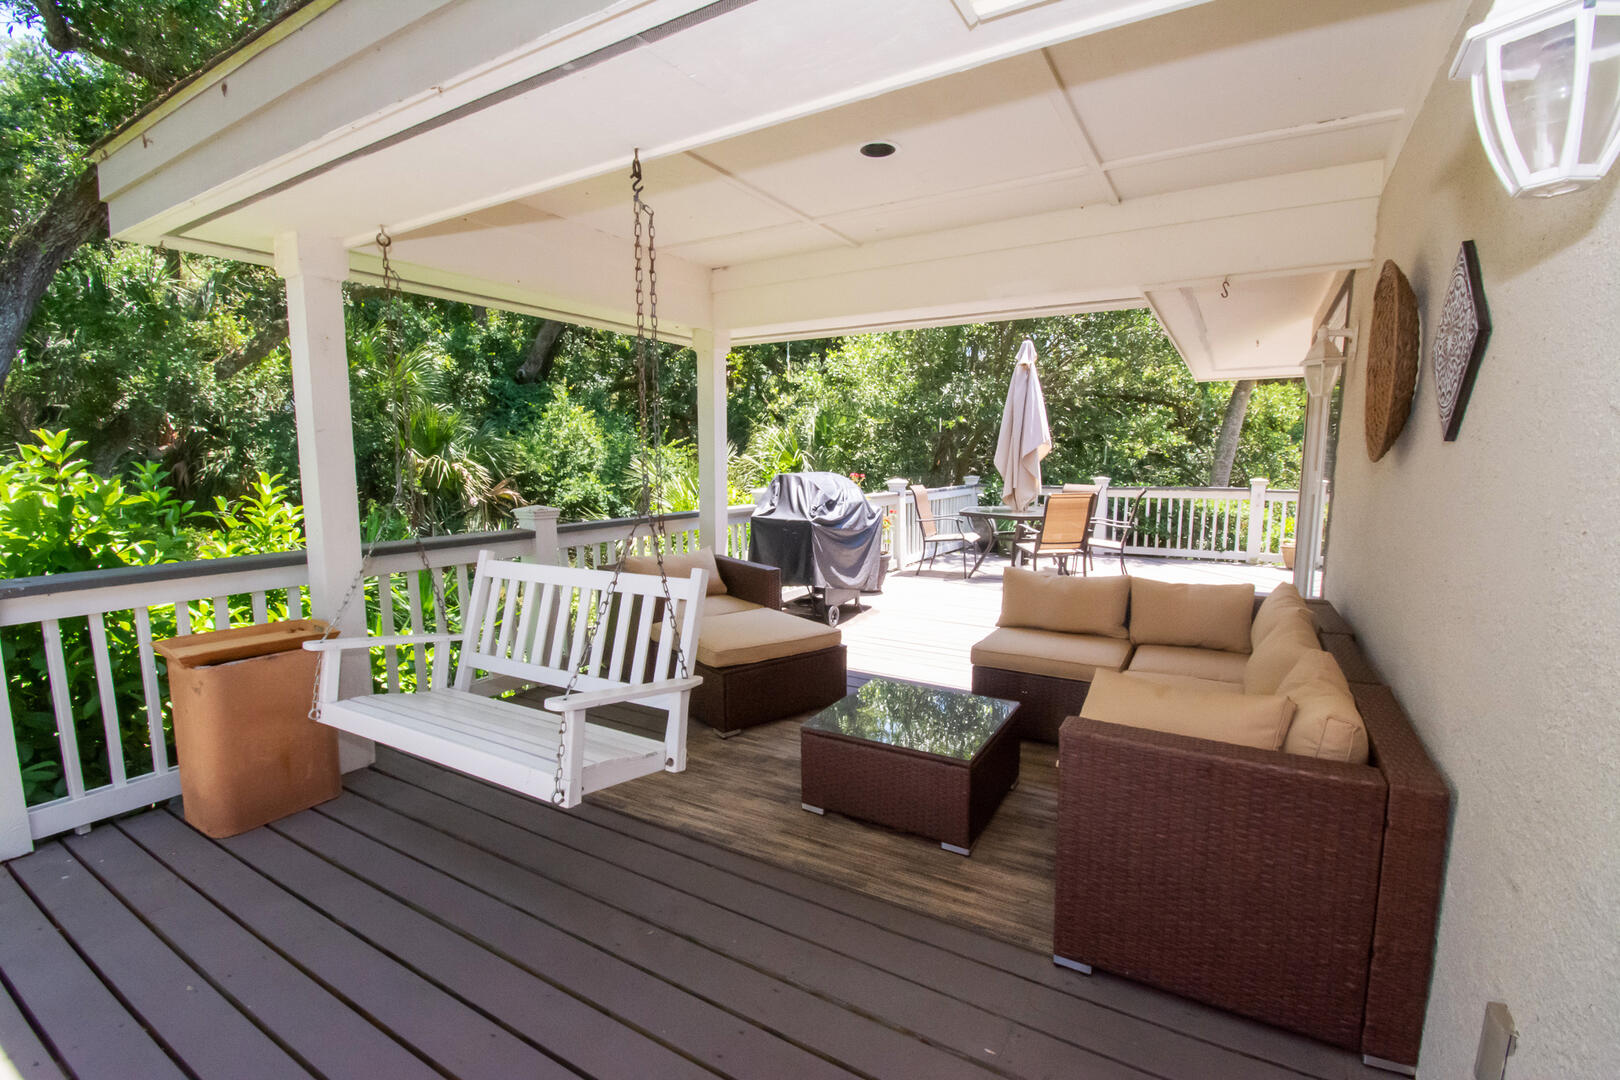 Porch with swing and sitting area and gas grill